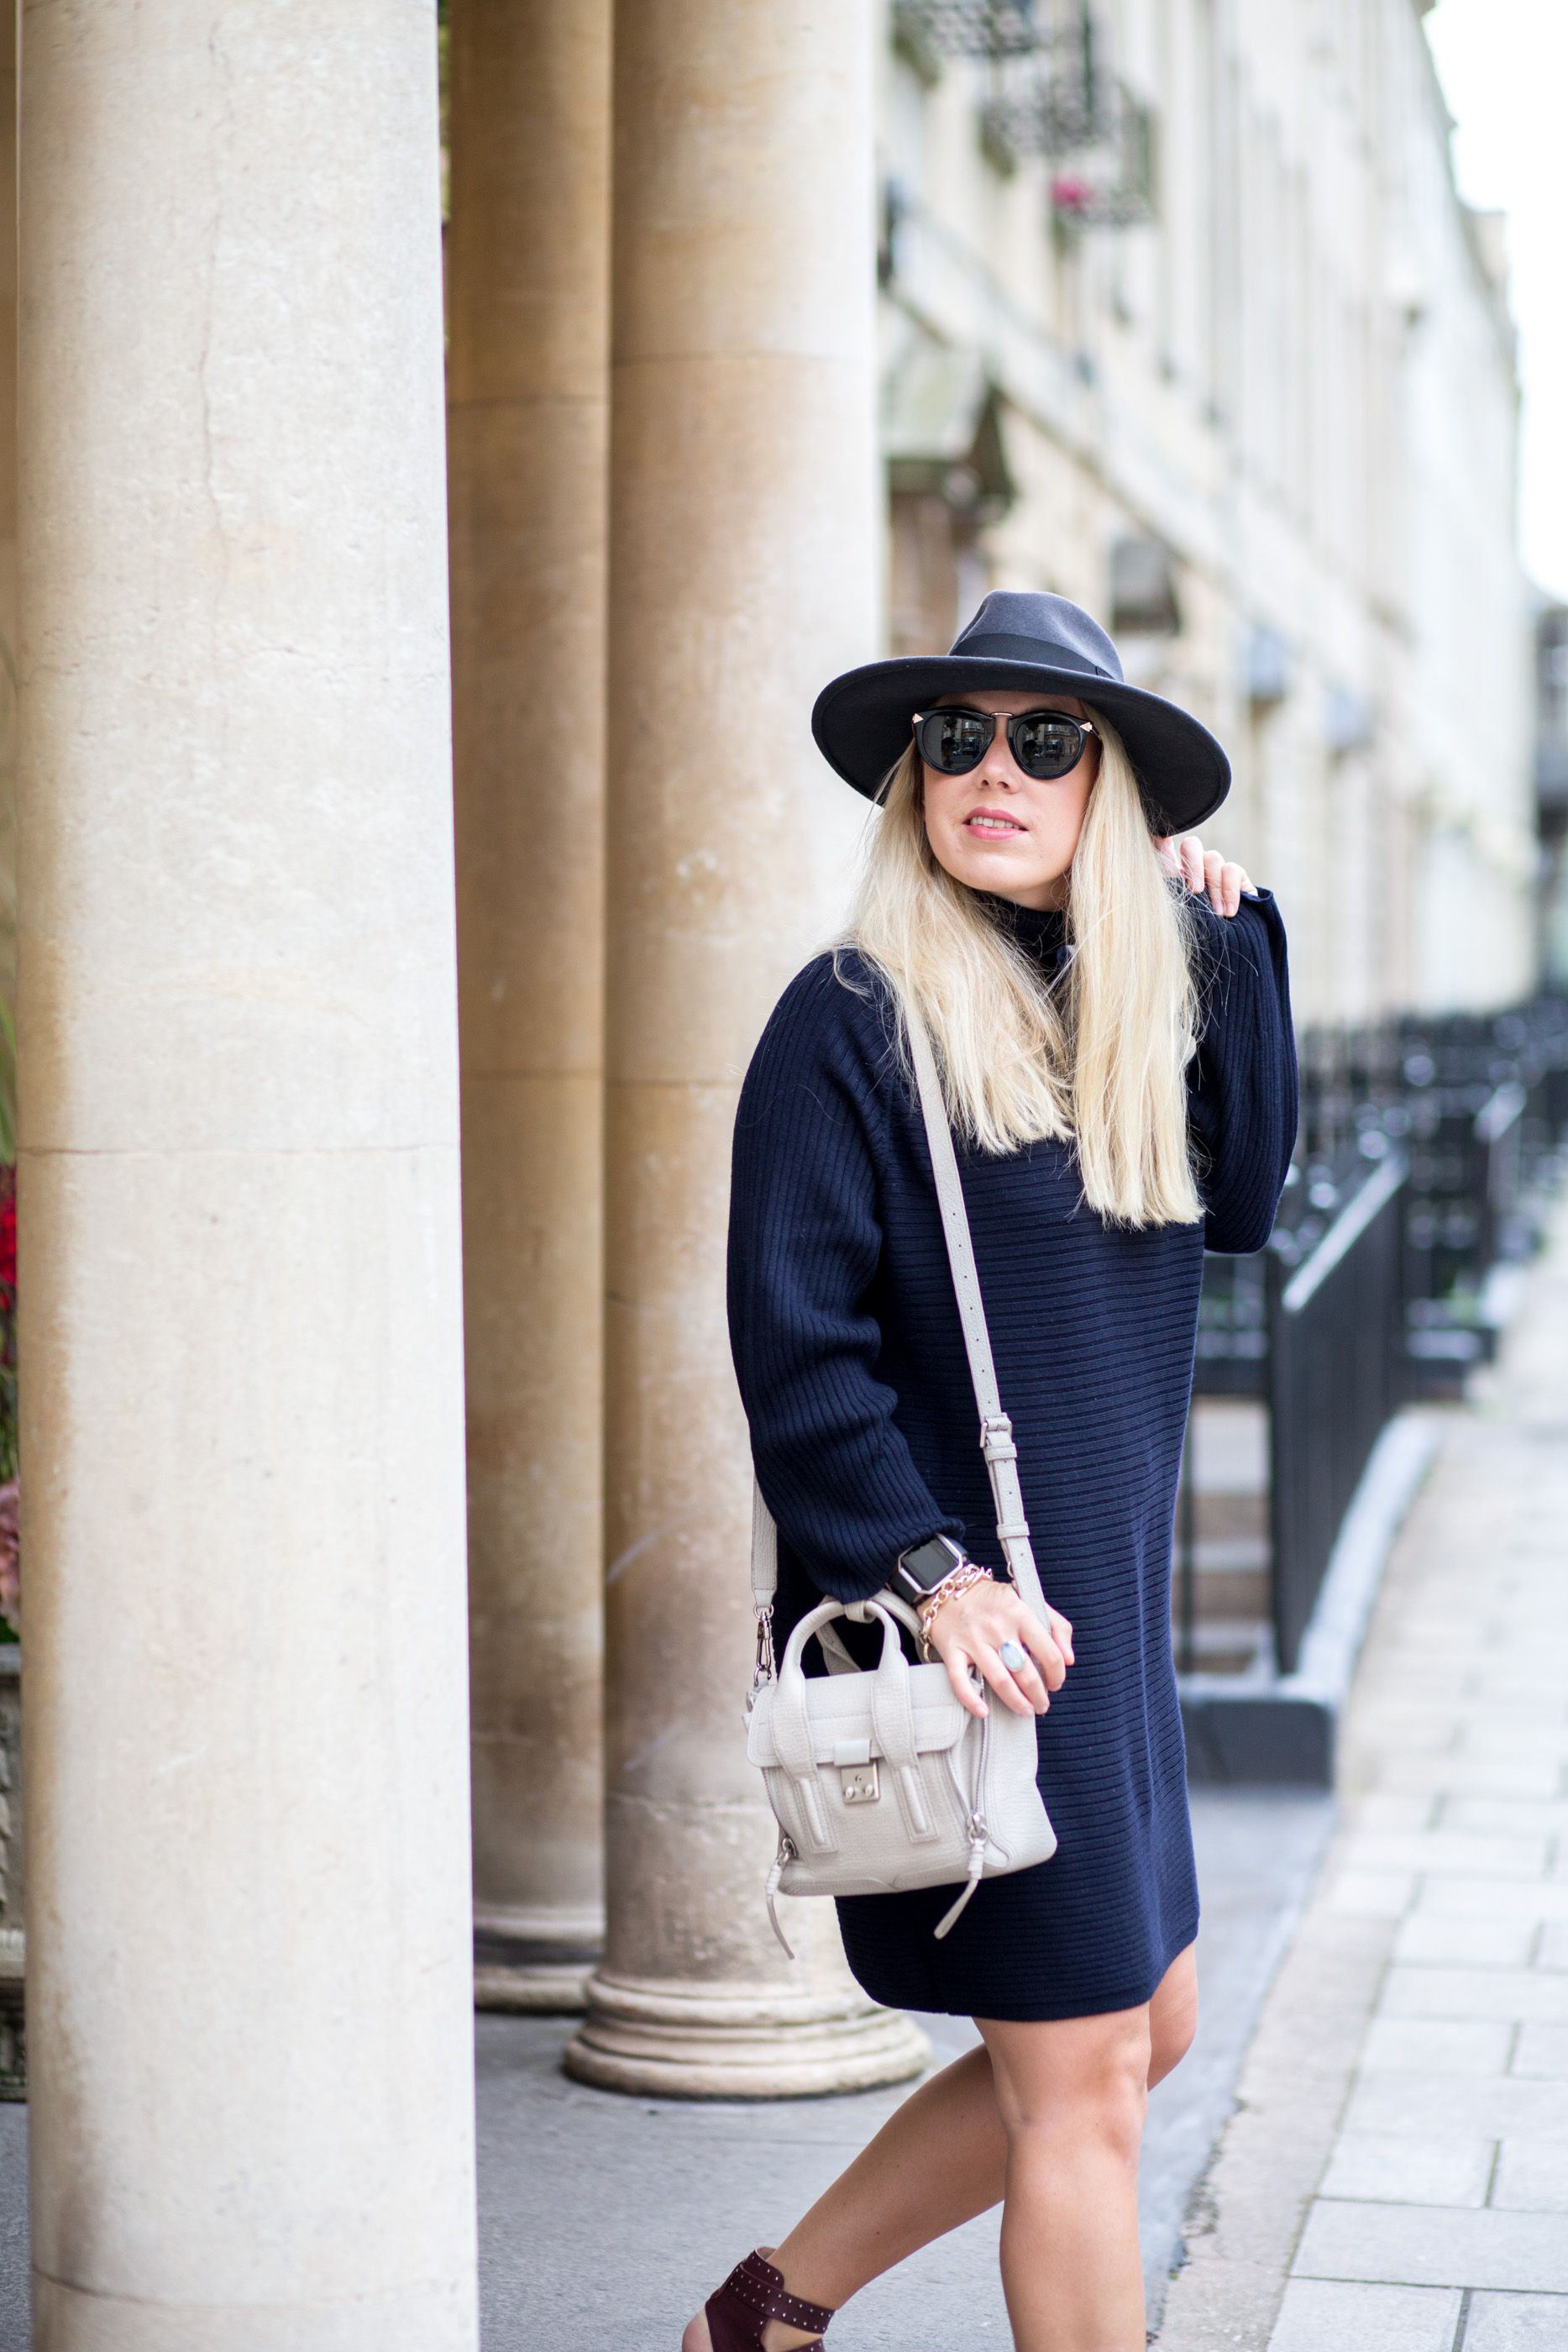 052a83b156 HOW TO TRANSITION INTO FALL WITH THE JUMPER DRESS - Mediamarmalade